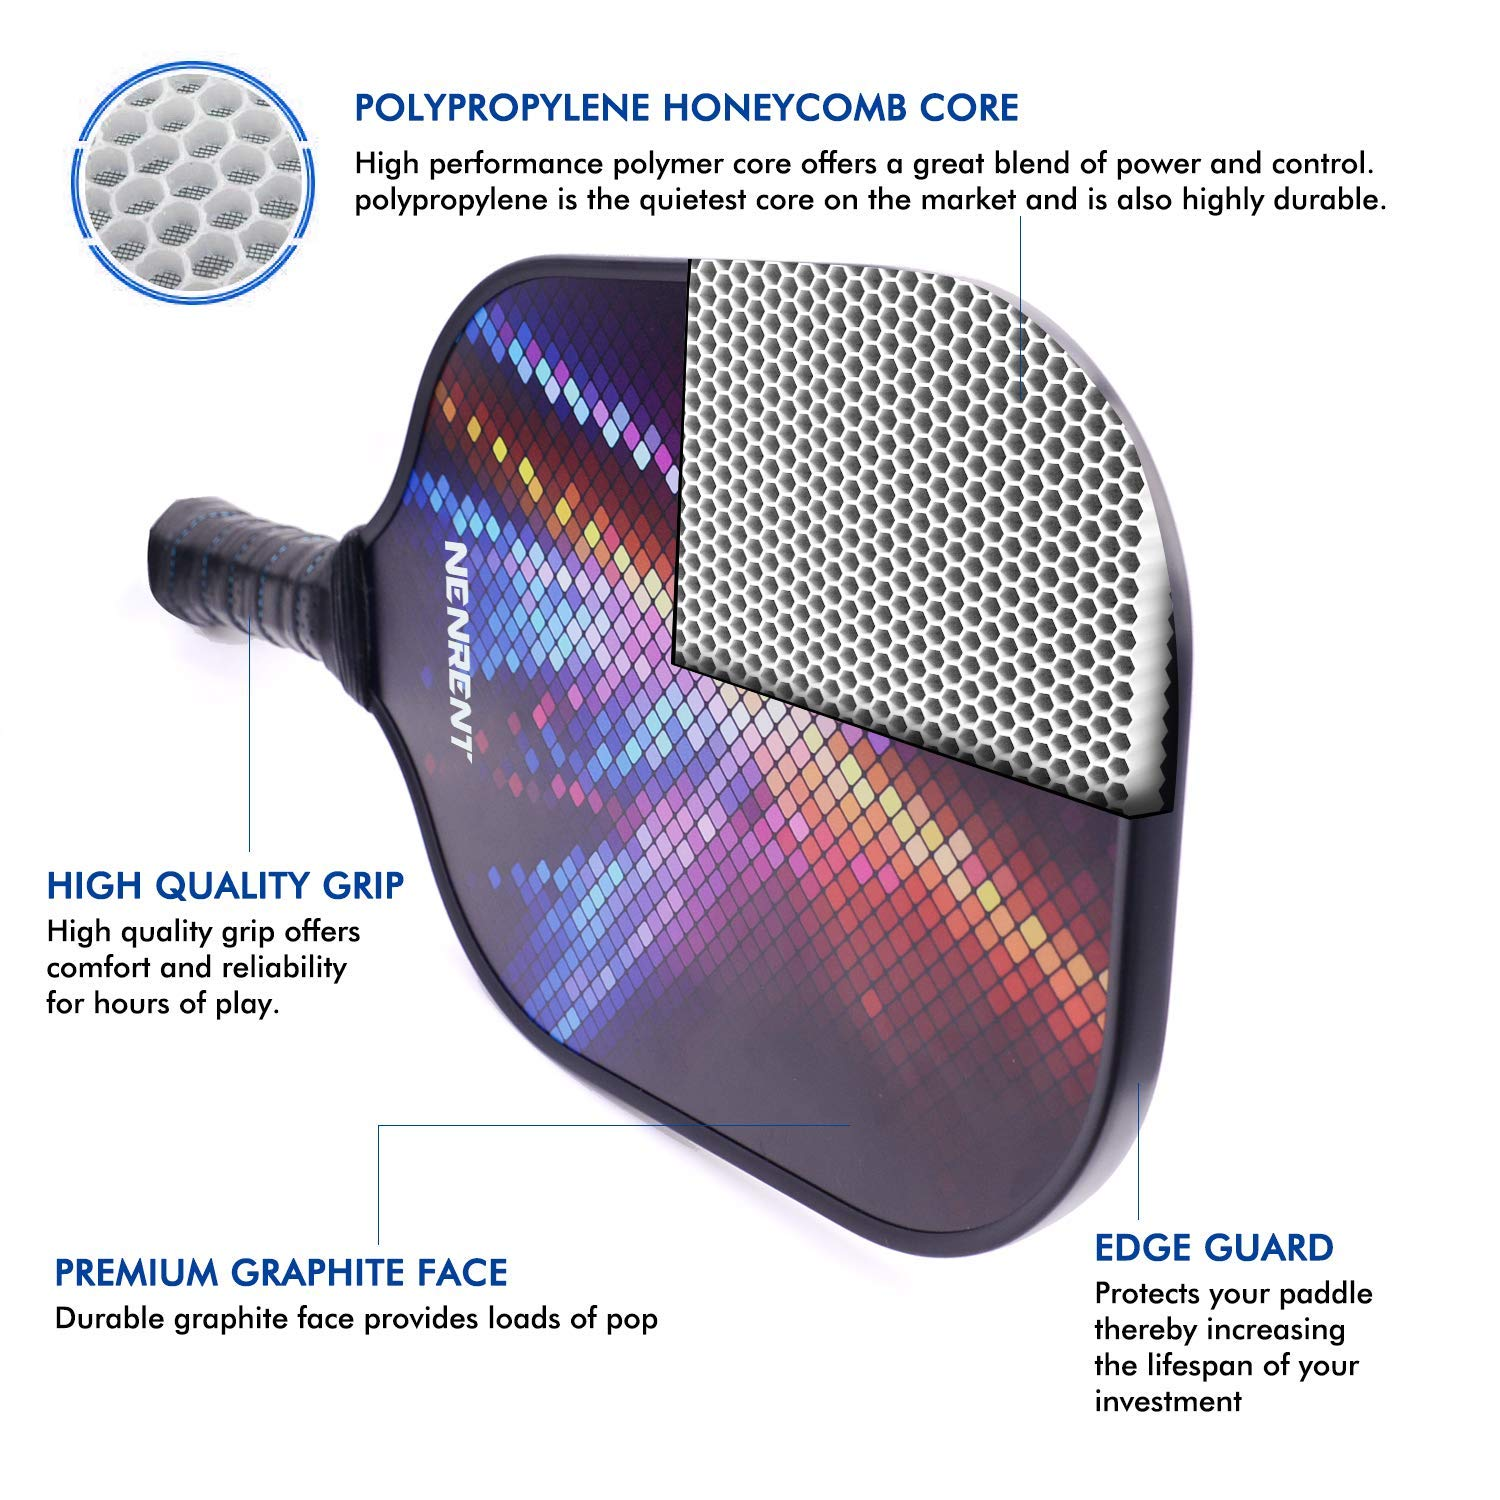 ... Composite Core Paddle Set Lightweight Carbon Fiber Pickleballs Racquet Edge Guard Ultra Cushion Grip Paddle with Cover 7.8-8 OZ : Sports & Outdoors